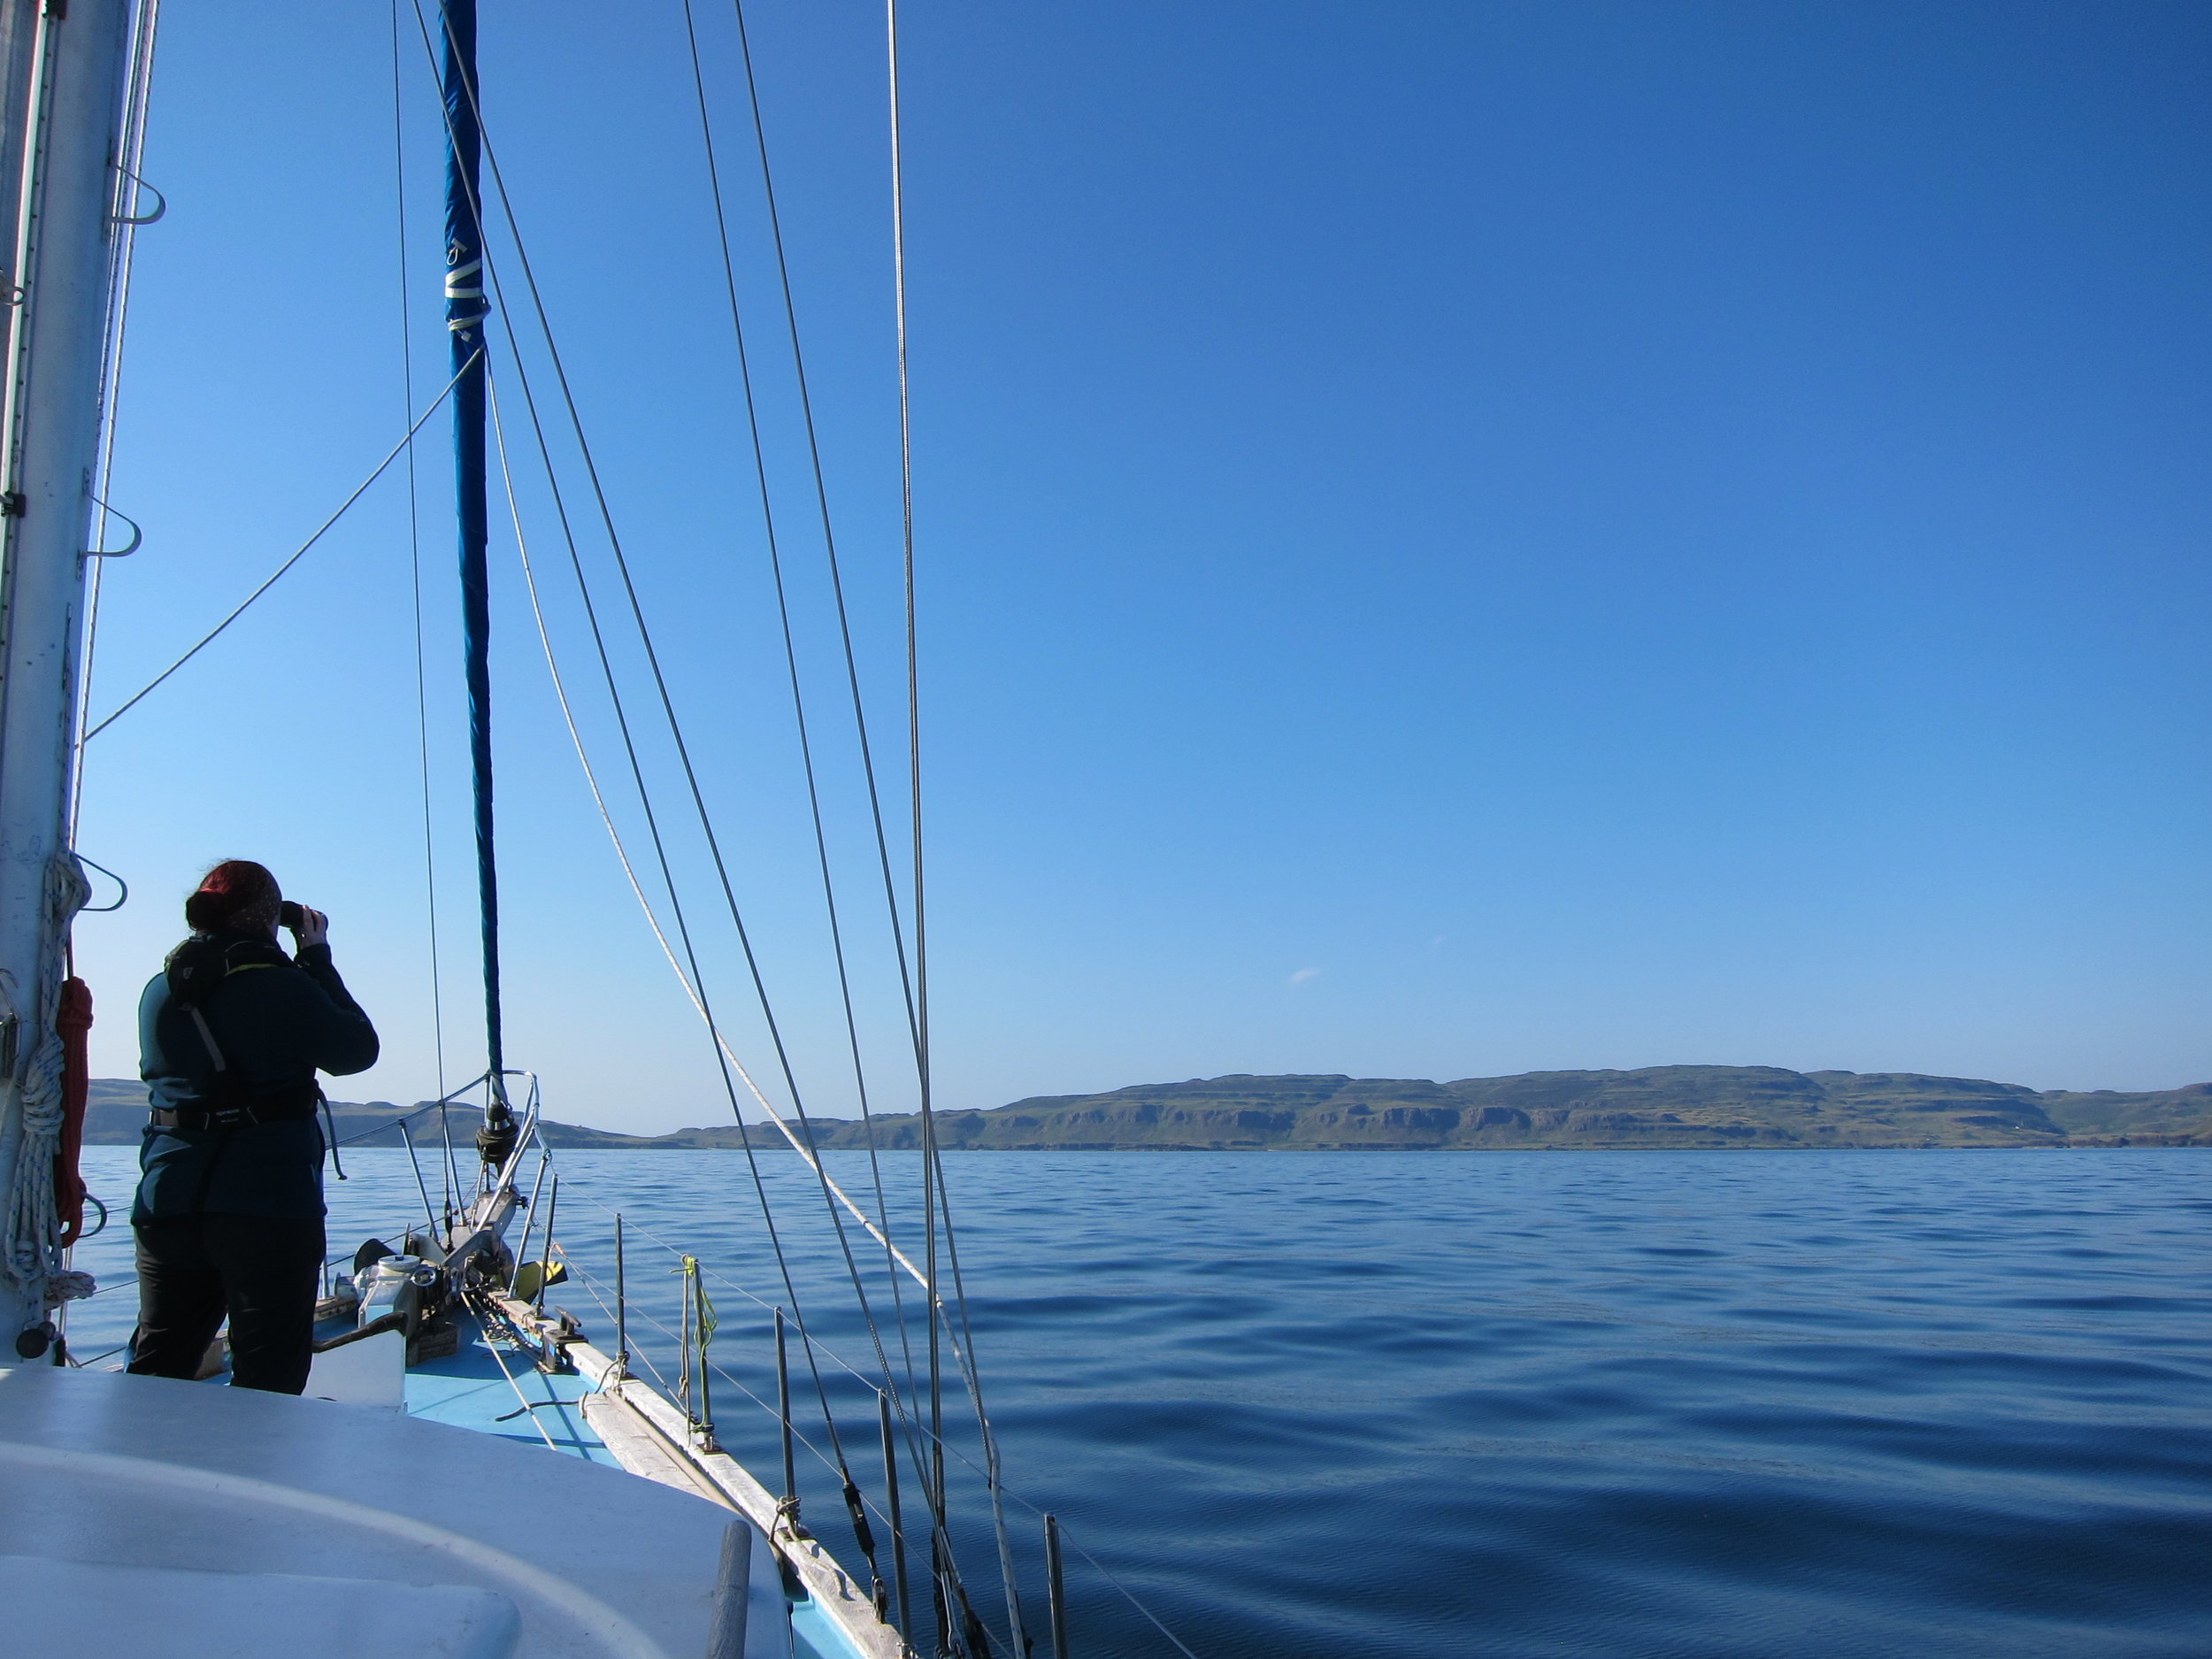 Leanne looking out for marine wildlife in perfect spotting conditions during her 12th survey on Silurian